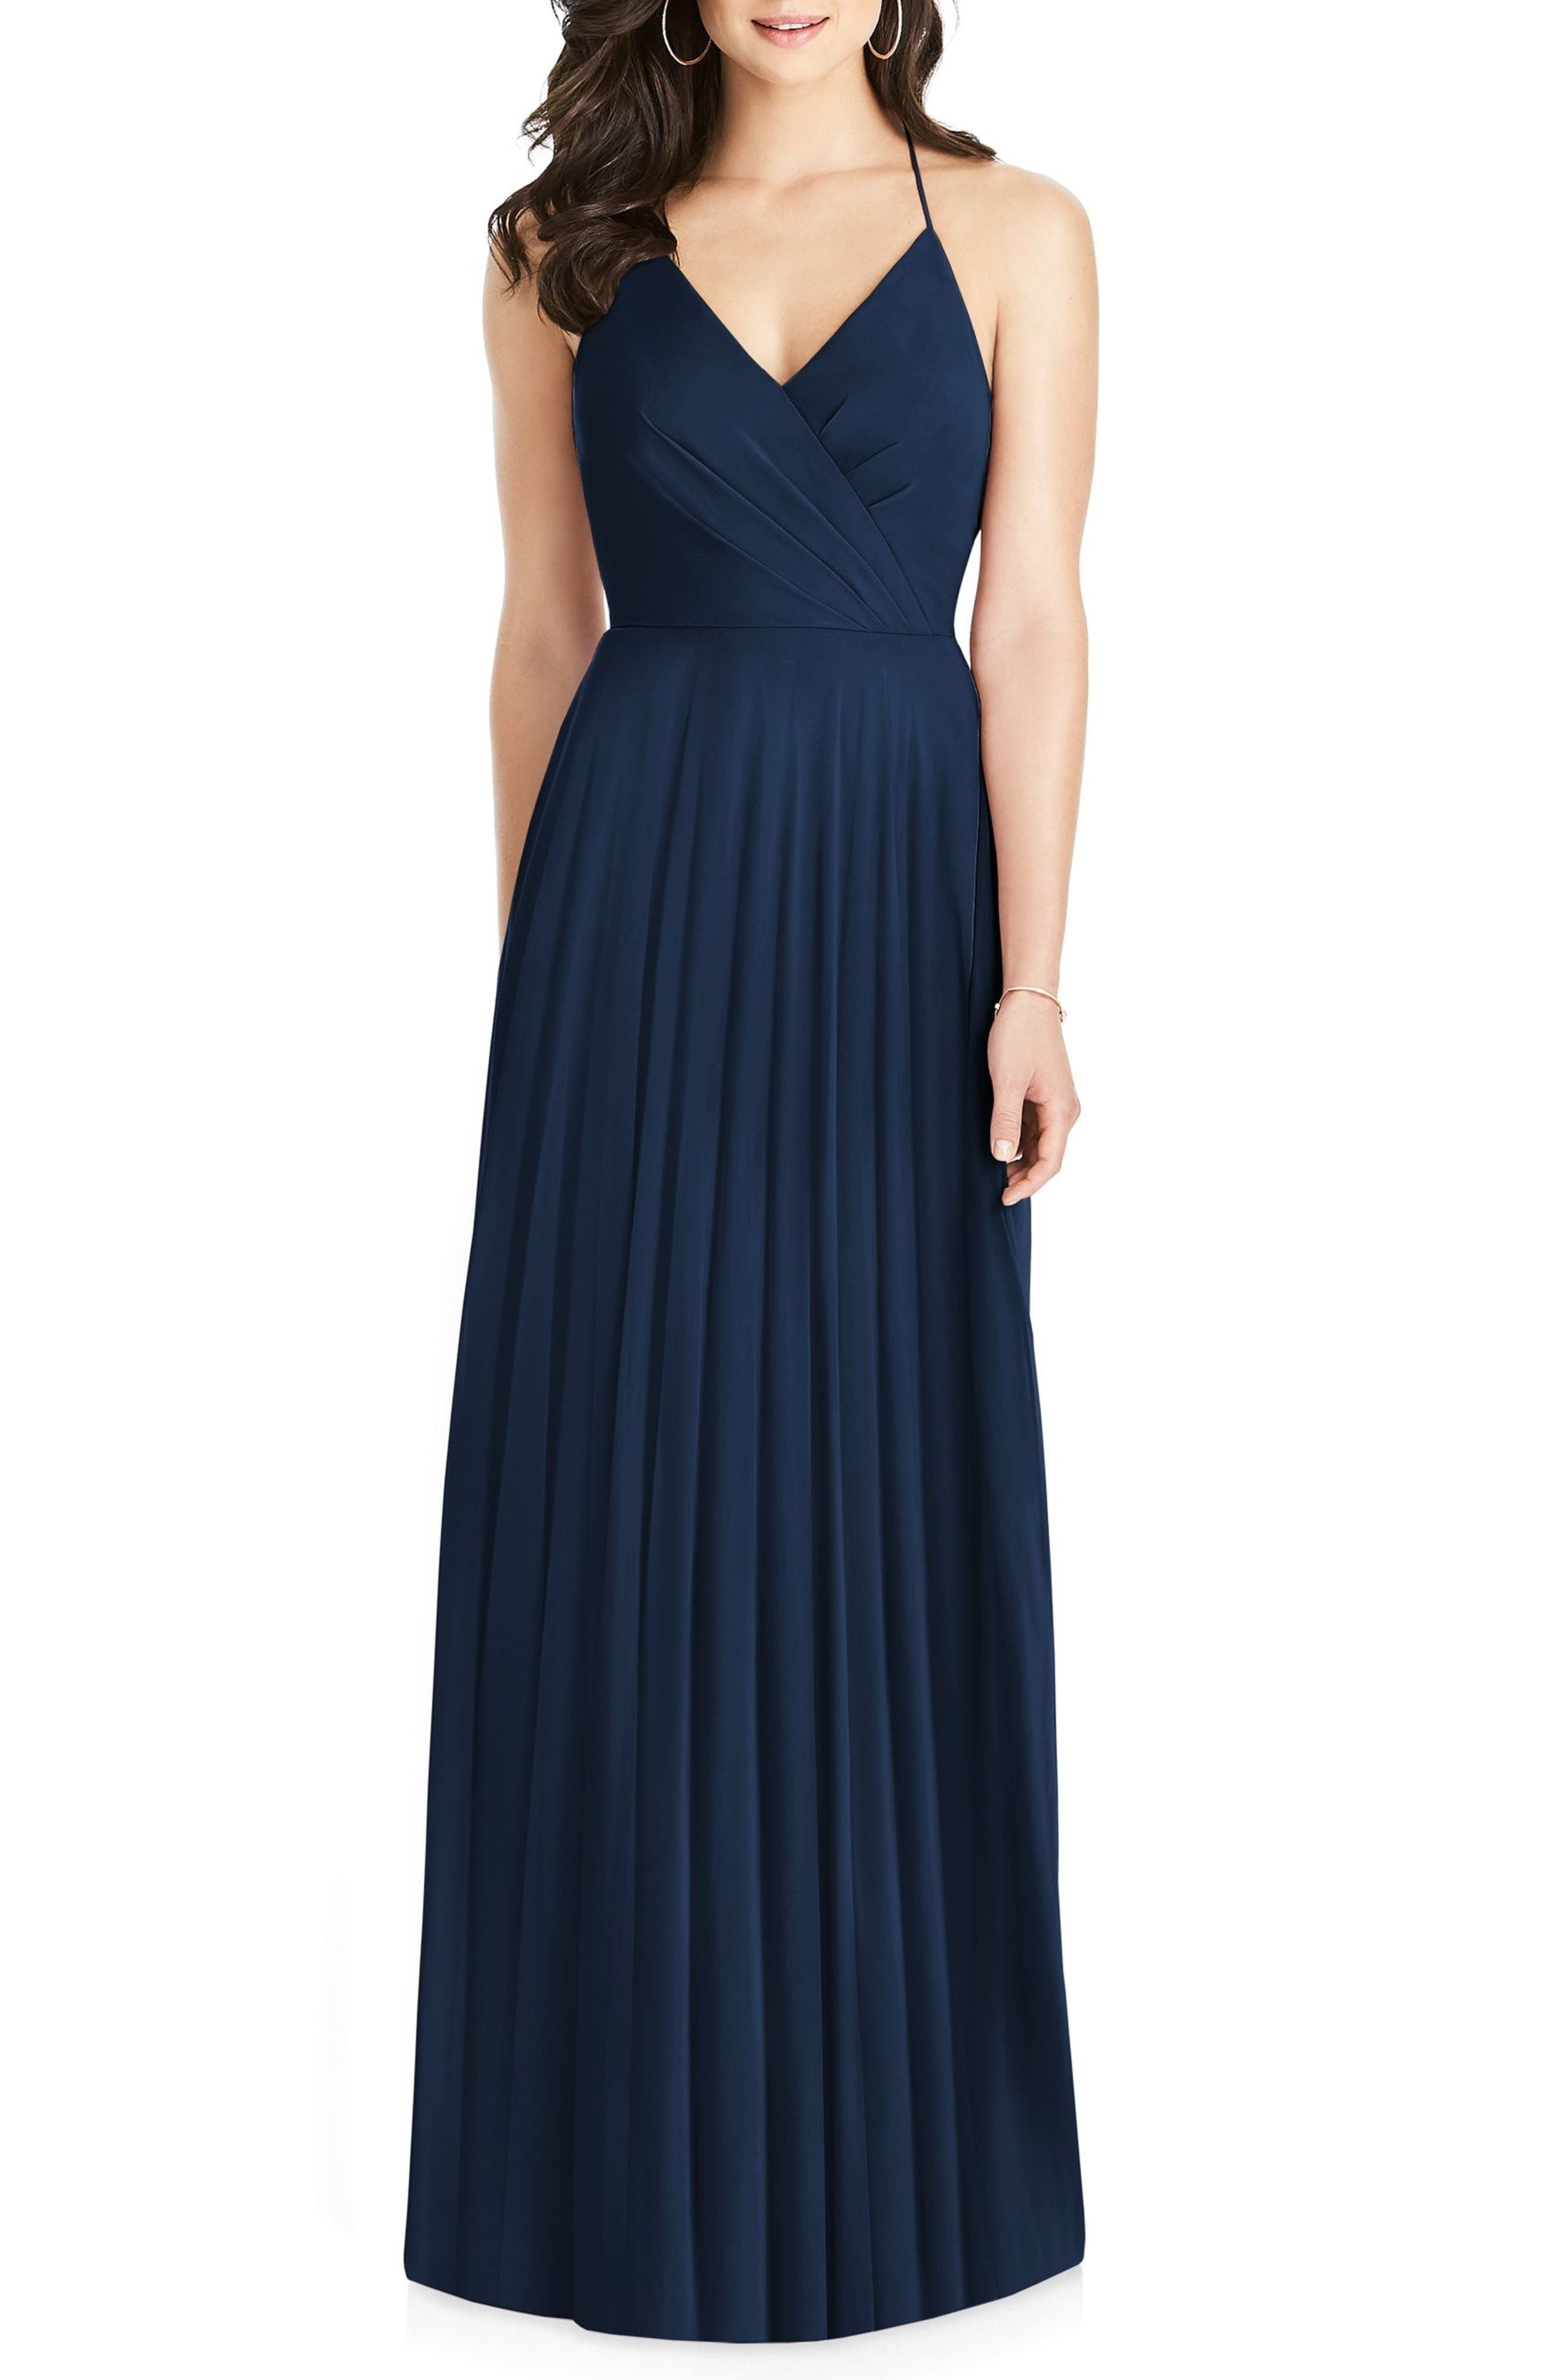 DESSY COLLECTION, Ruffle Back Chiffon Gown, Main thumbnail 1, color, MIDNIGHT